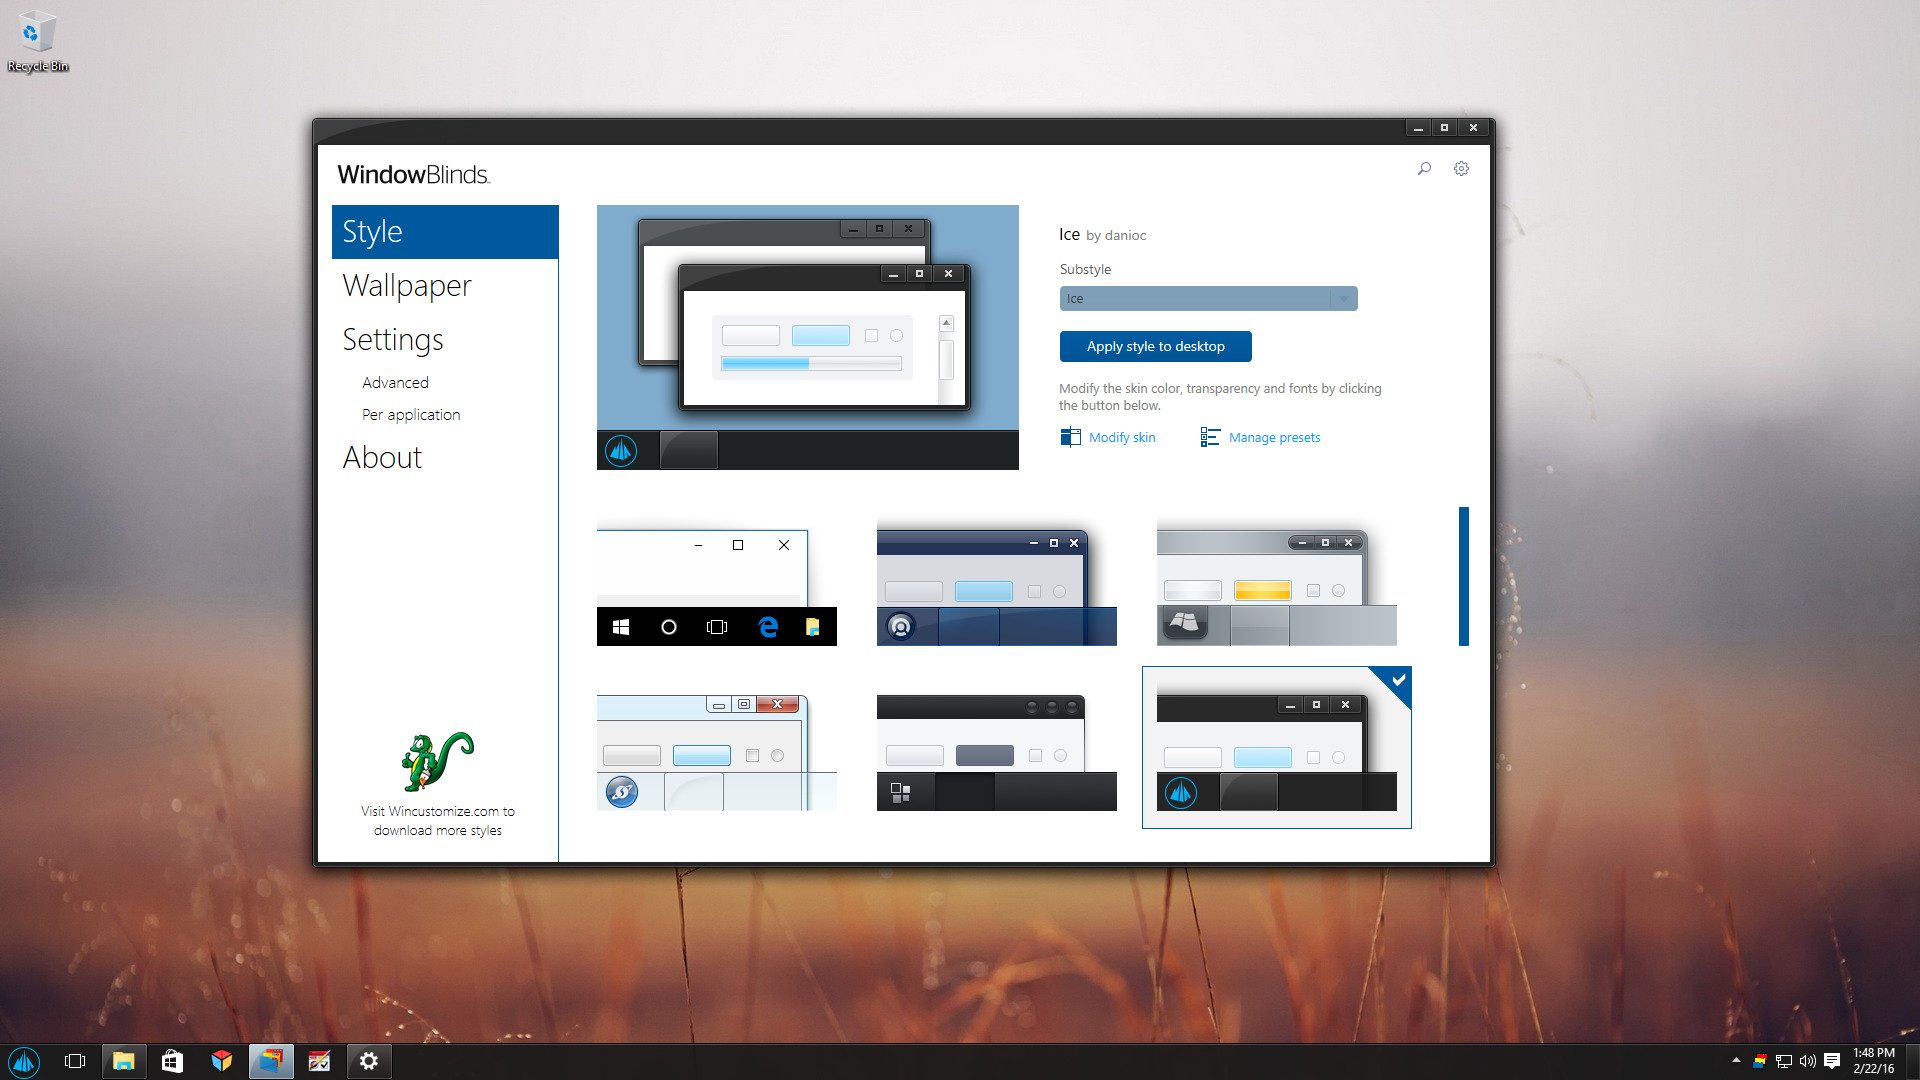 Stardock Announces The Release Of Windowblinds 10 Neowin